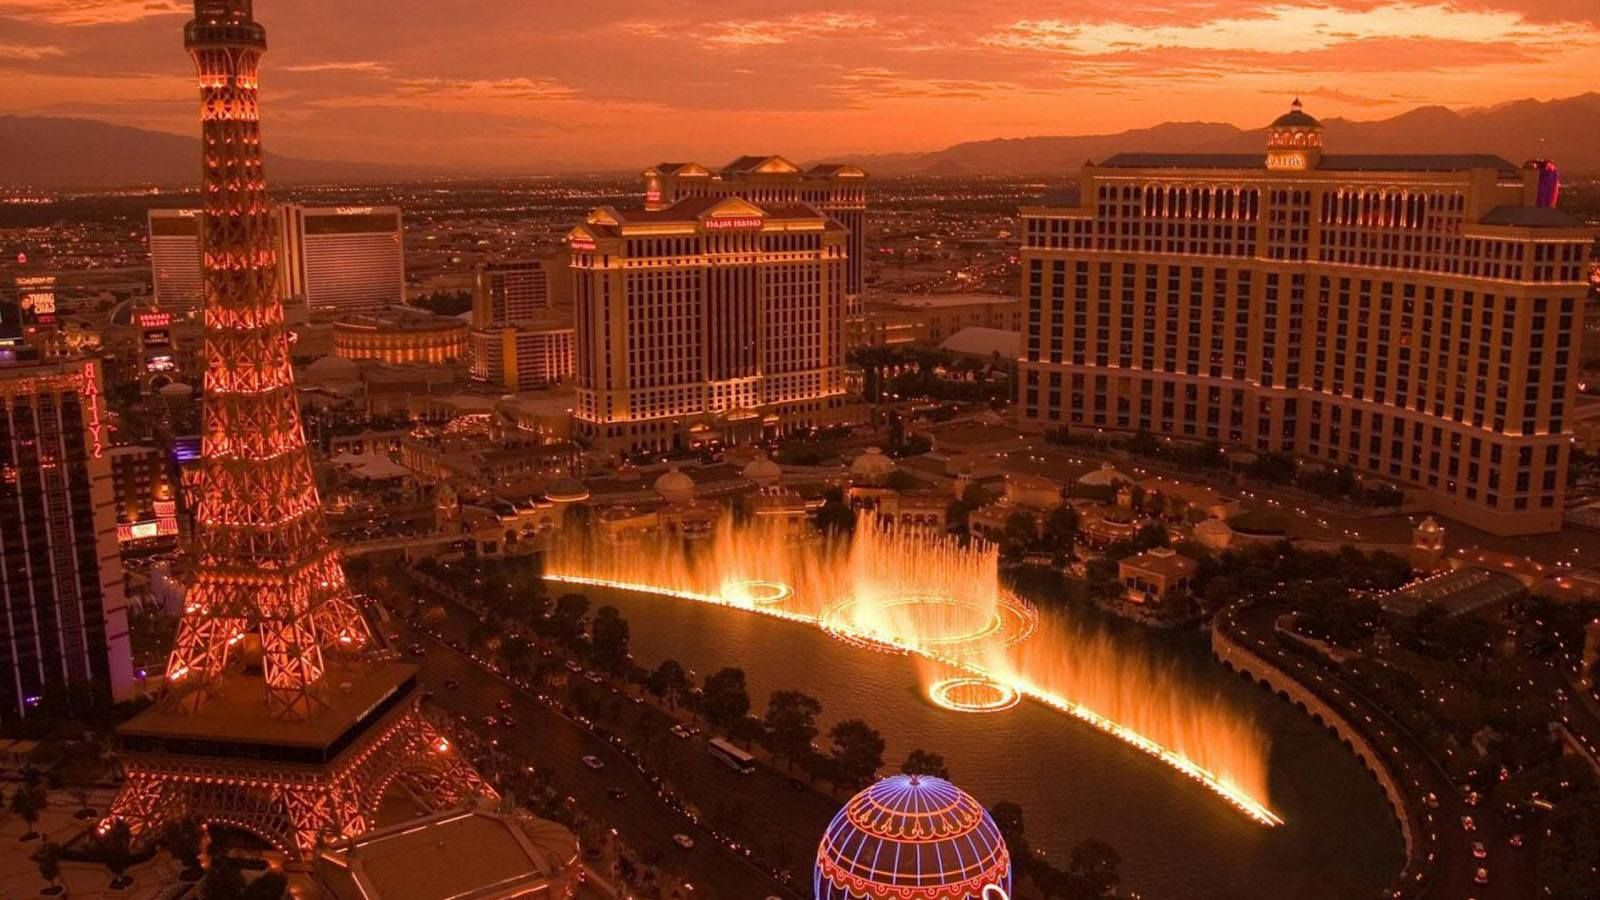 The heart of the Las Vegas strip at sunset